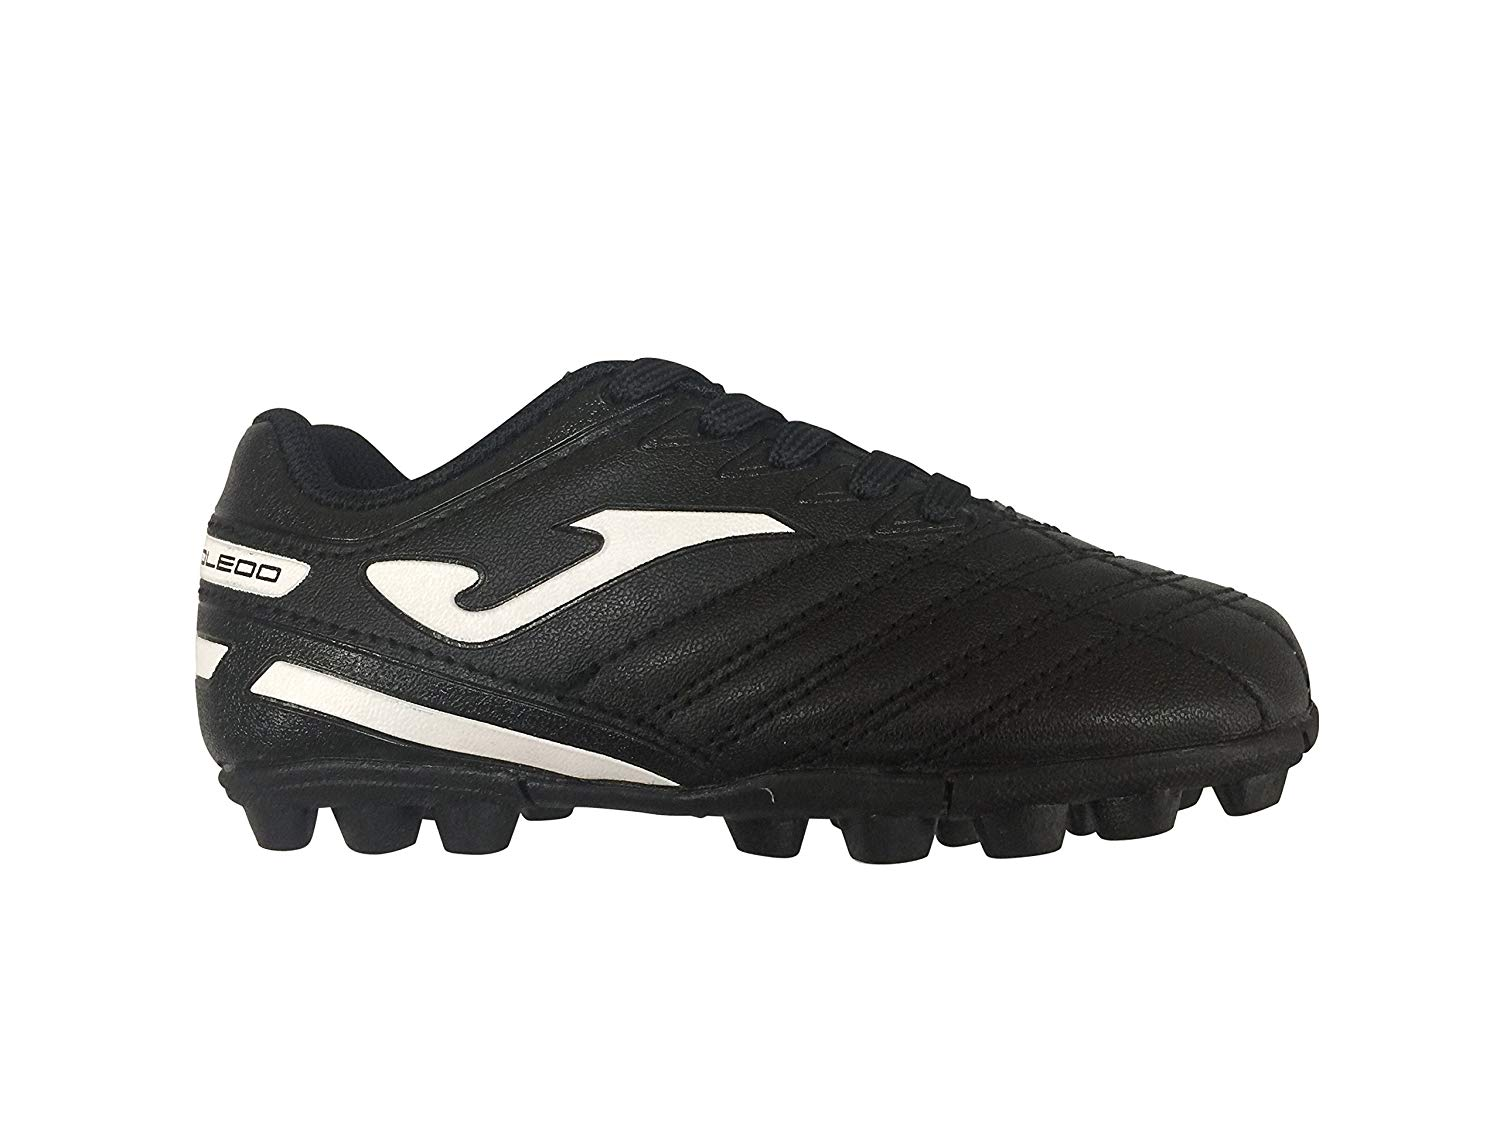 a7c4f269339 Cheap Size 8 Toddler Soccer Cleats, find Size 8 Toddler Soccer ...